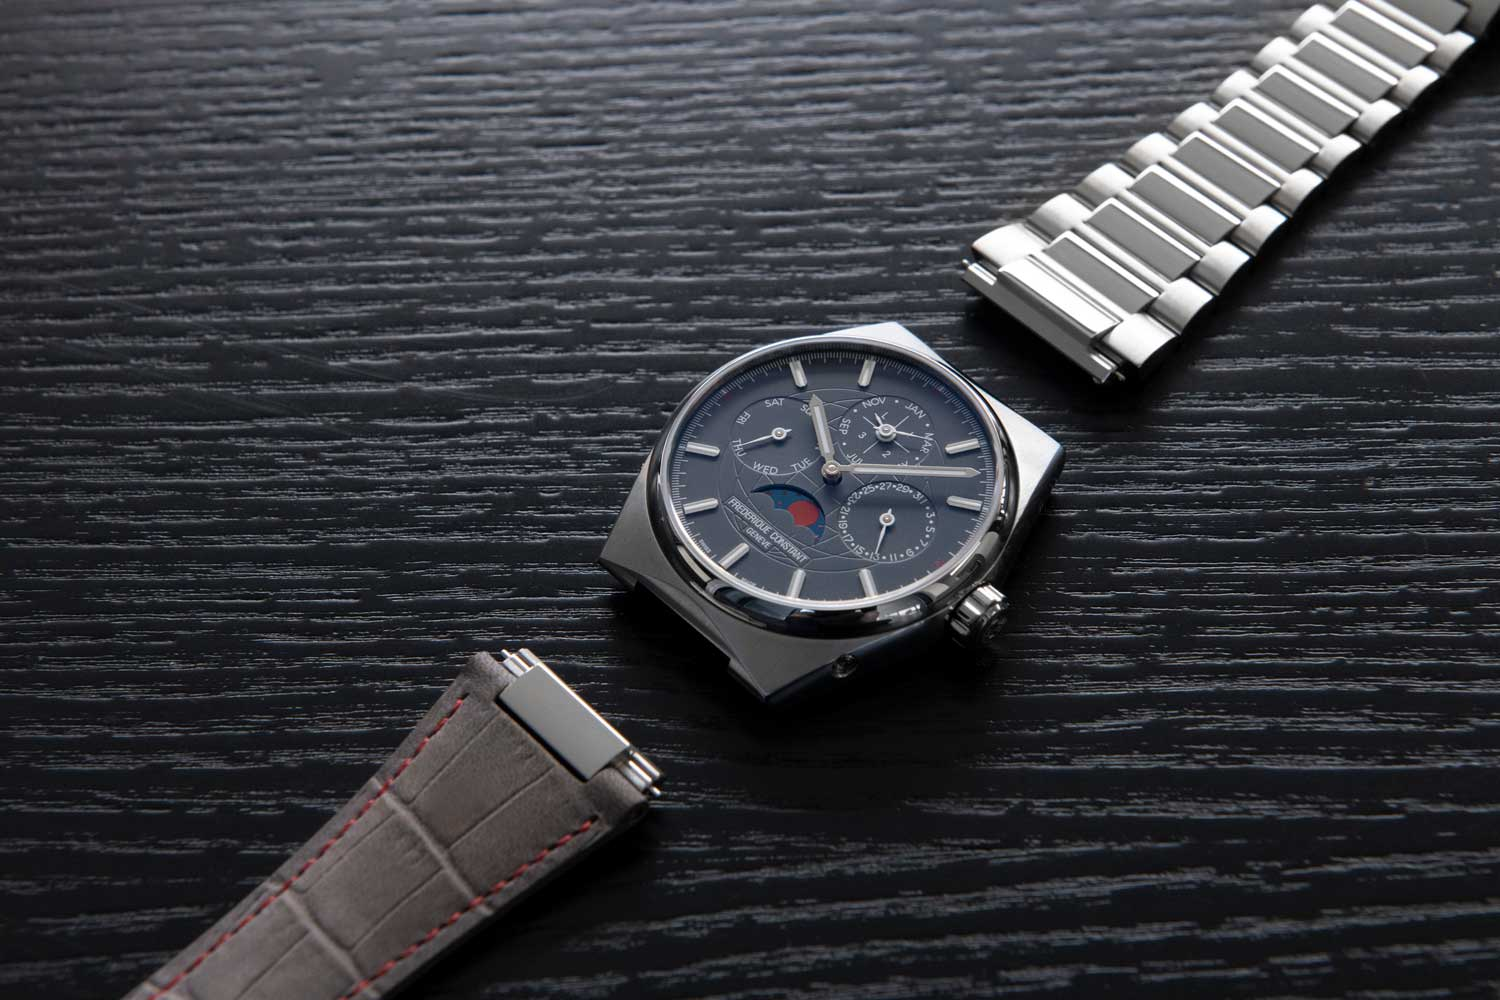 The perpetual calendar model comes with a blood-red moon, and a choice of stainless steel bracelet or a grey leather strap with red stitching.